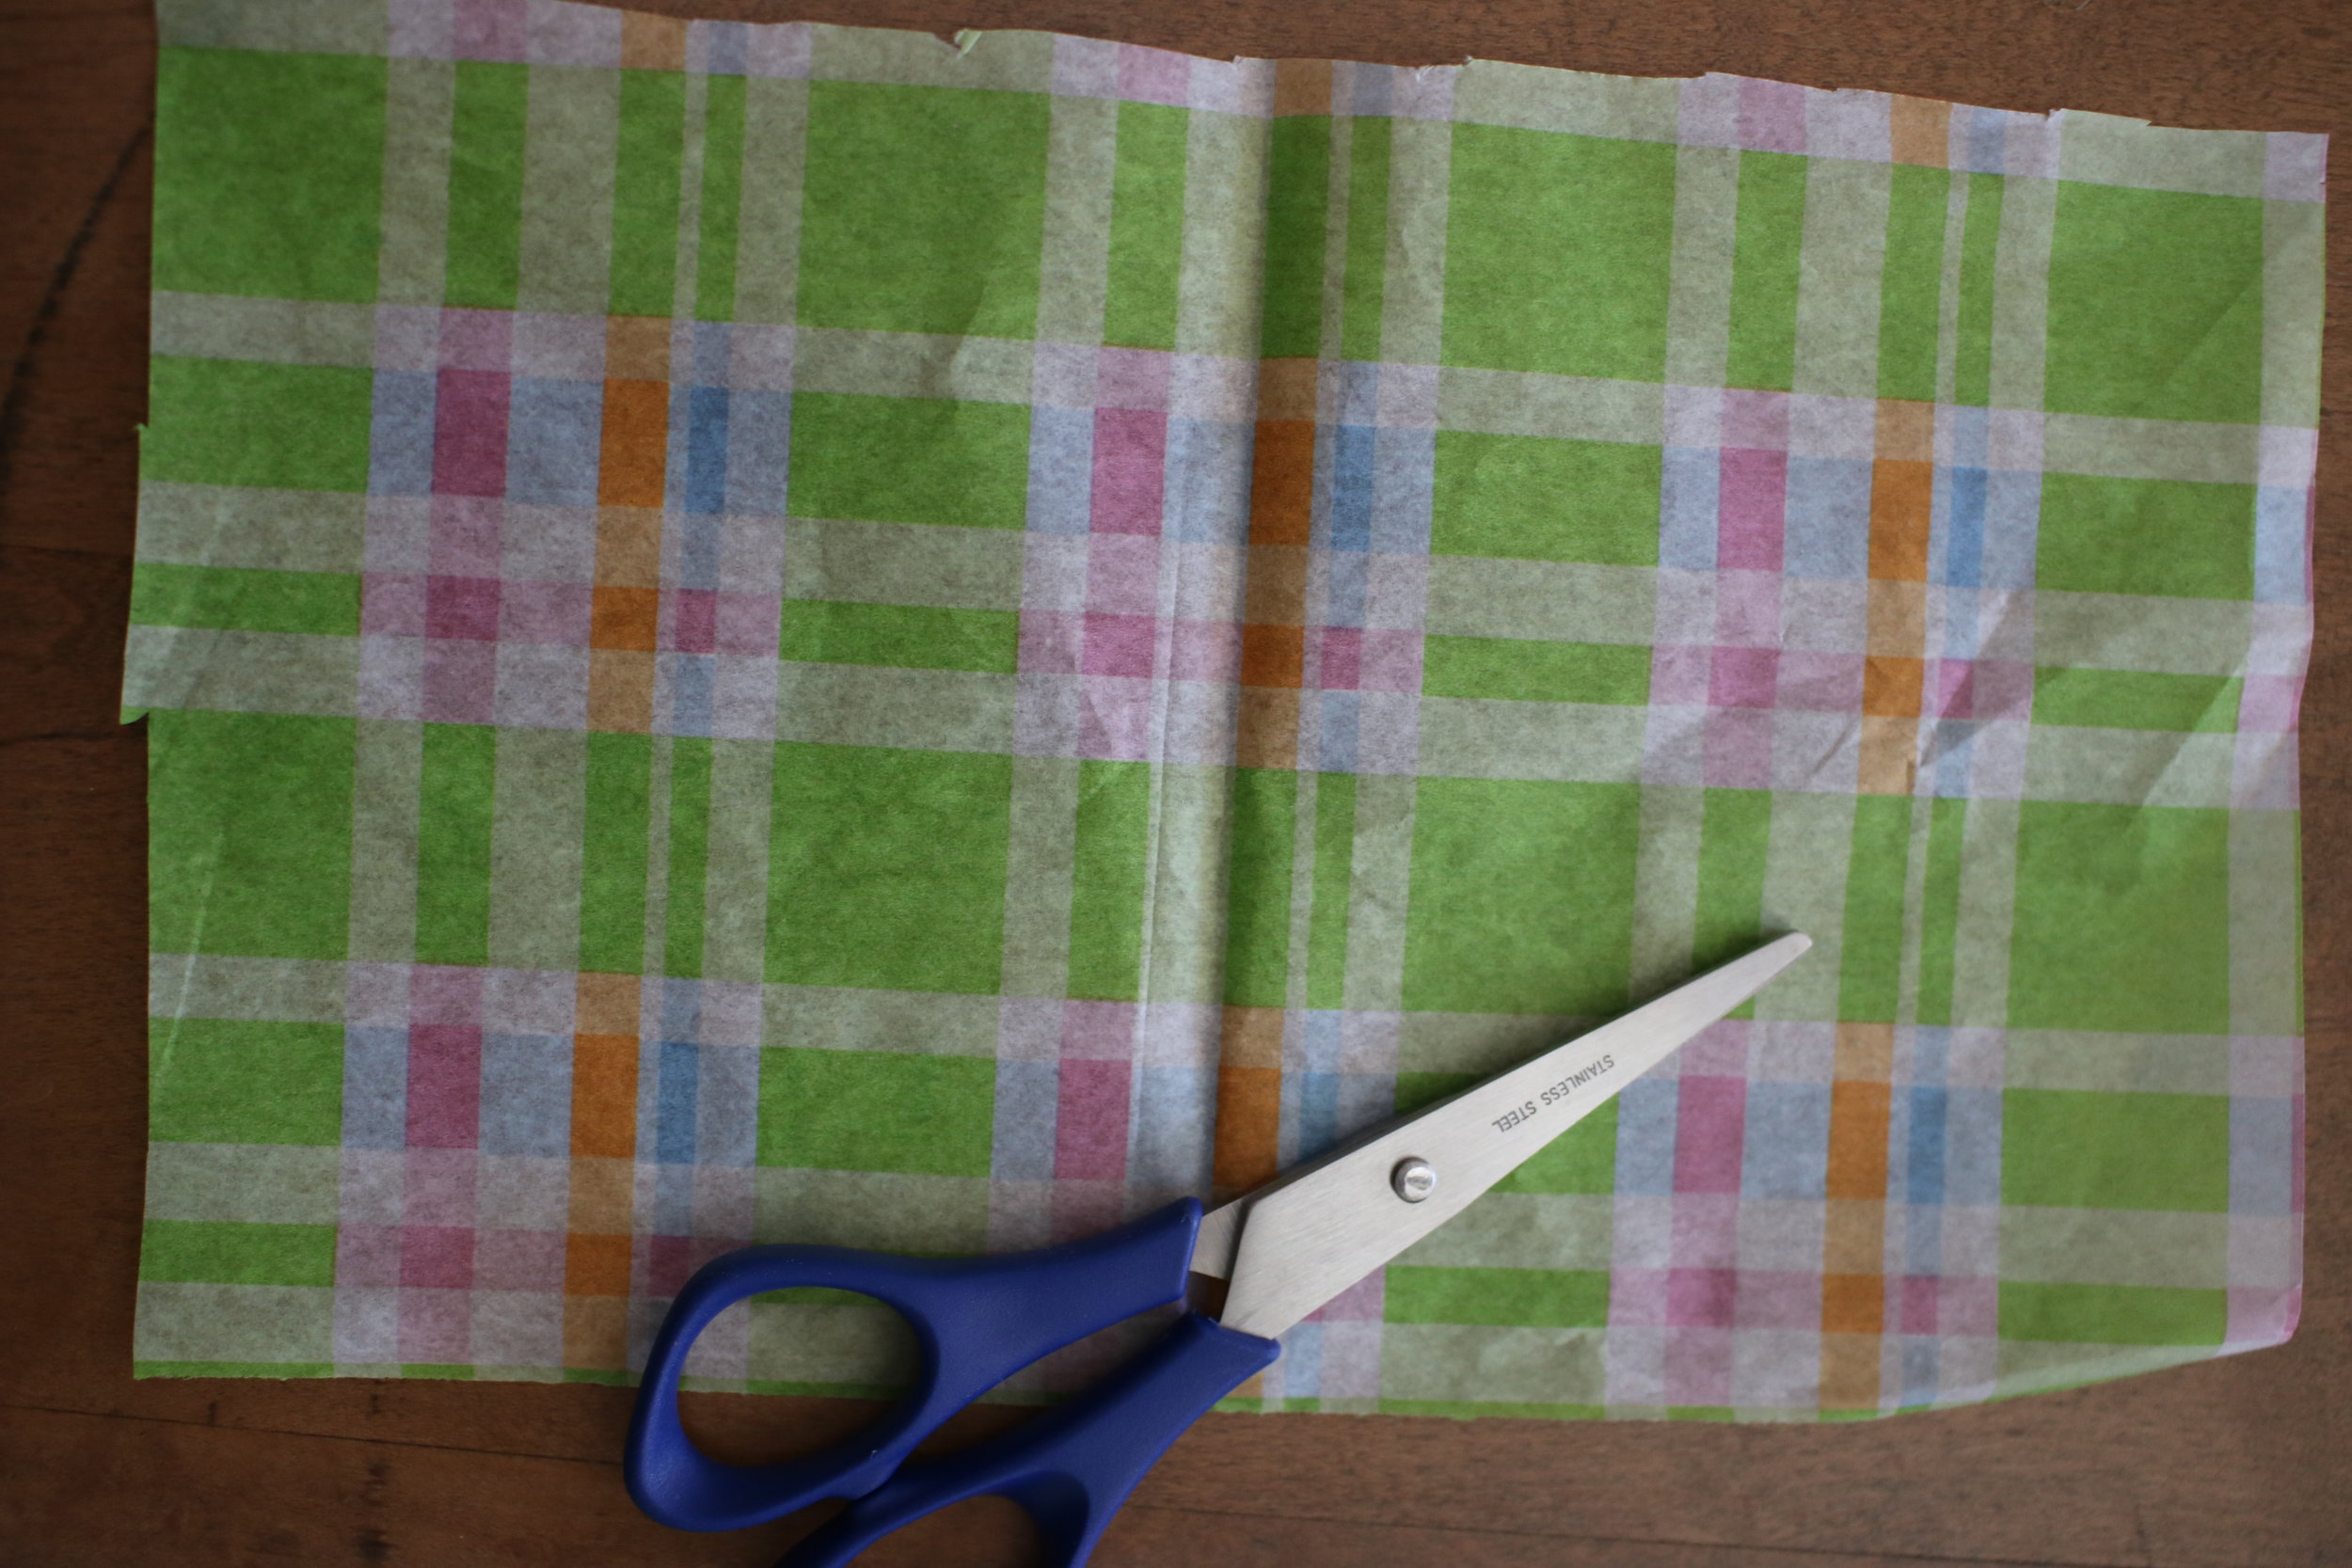 Step 1  - Cut your tissue paper or napkins about 6-7 inches long by 4 inches wide